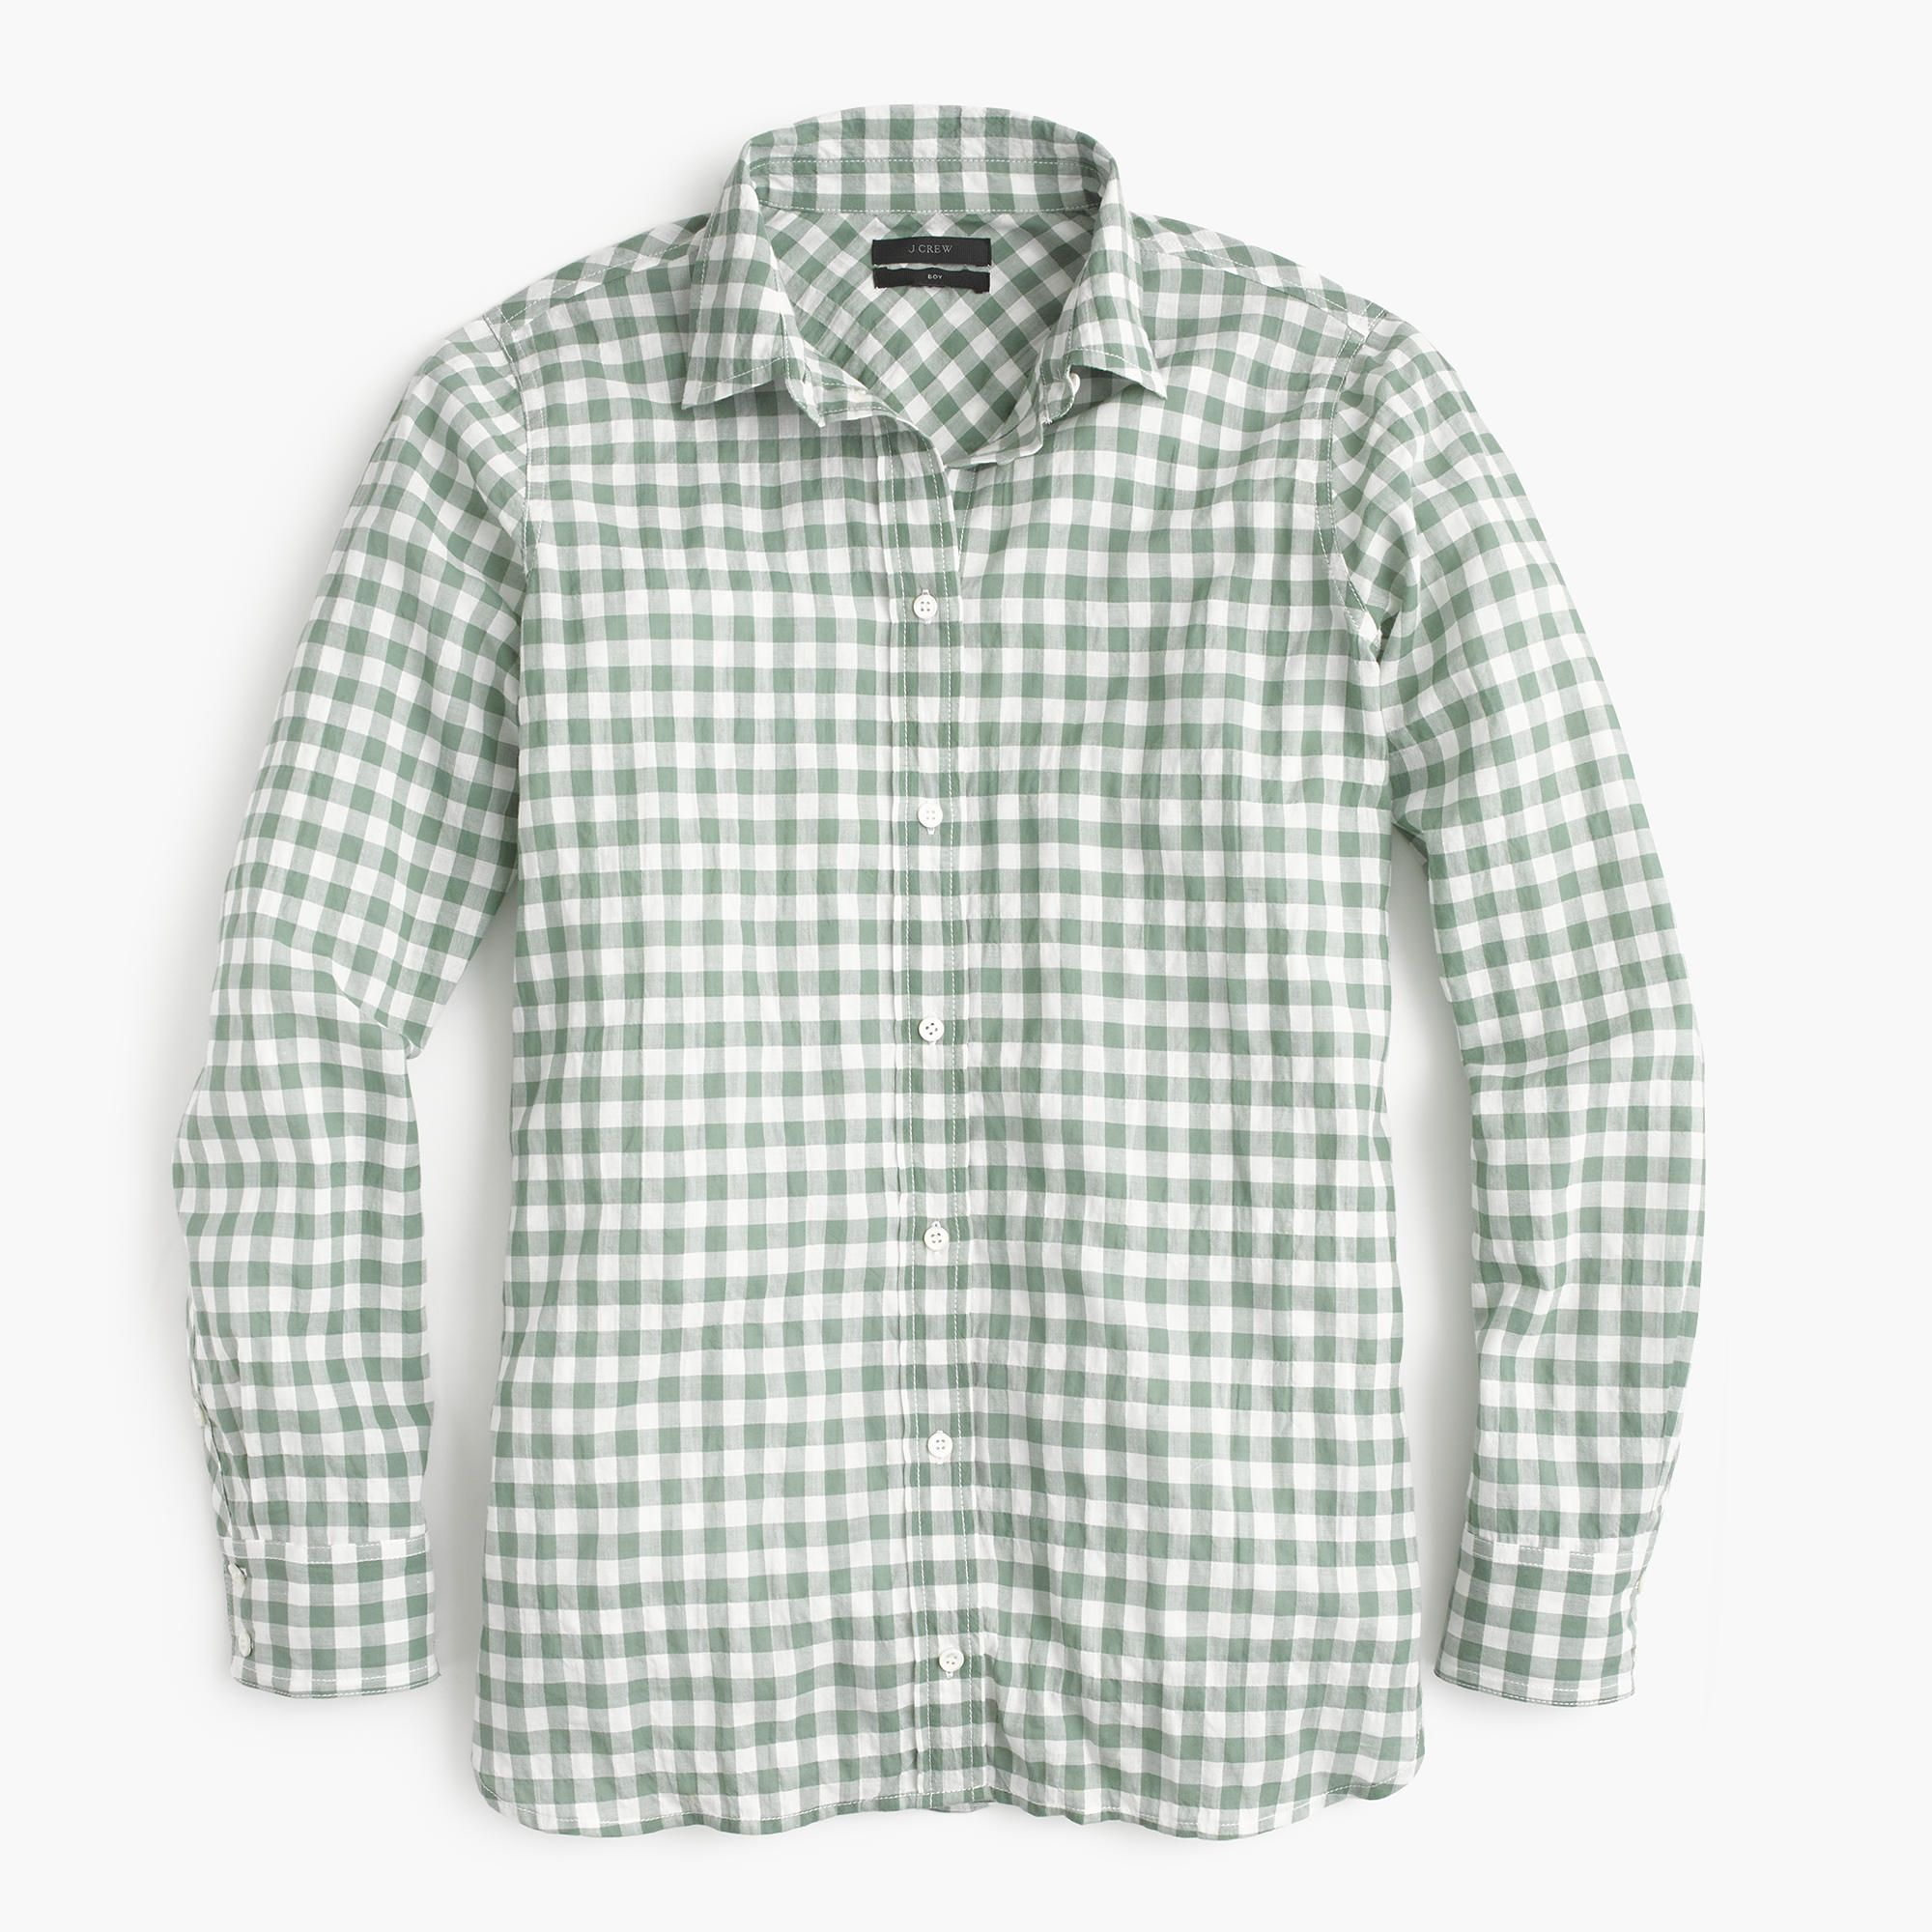 04fcc7199e7 Shop the Boy Shirt In Crinkle Gingham at JCrew.com and see our entire  selection of Women s Shirts.